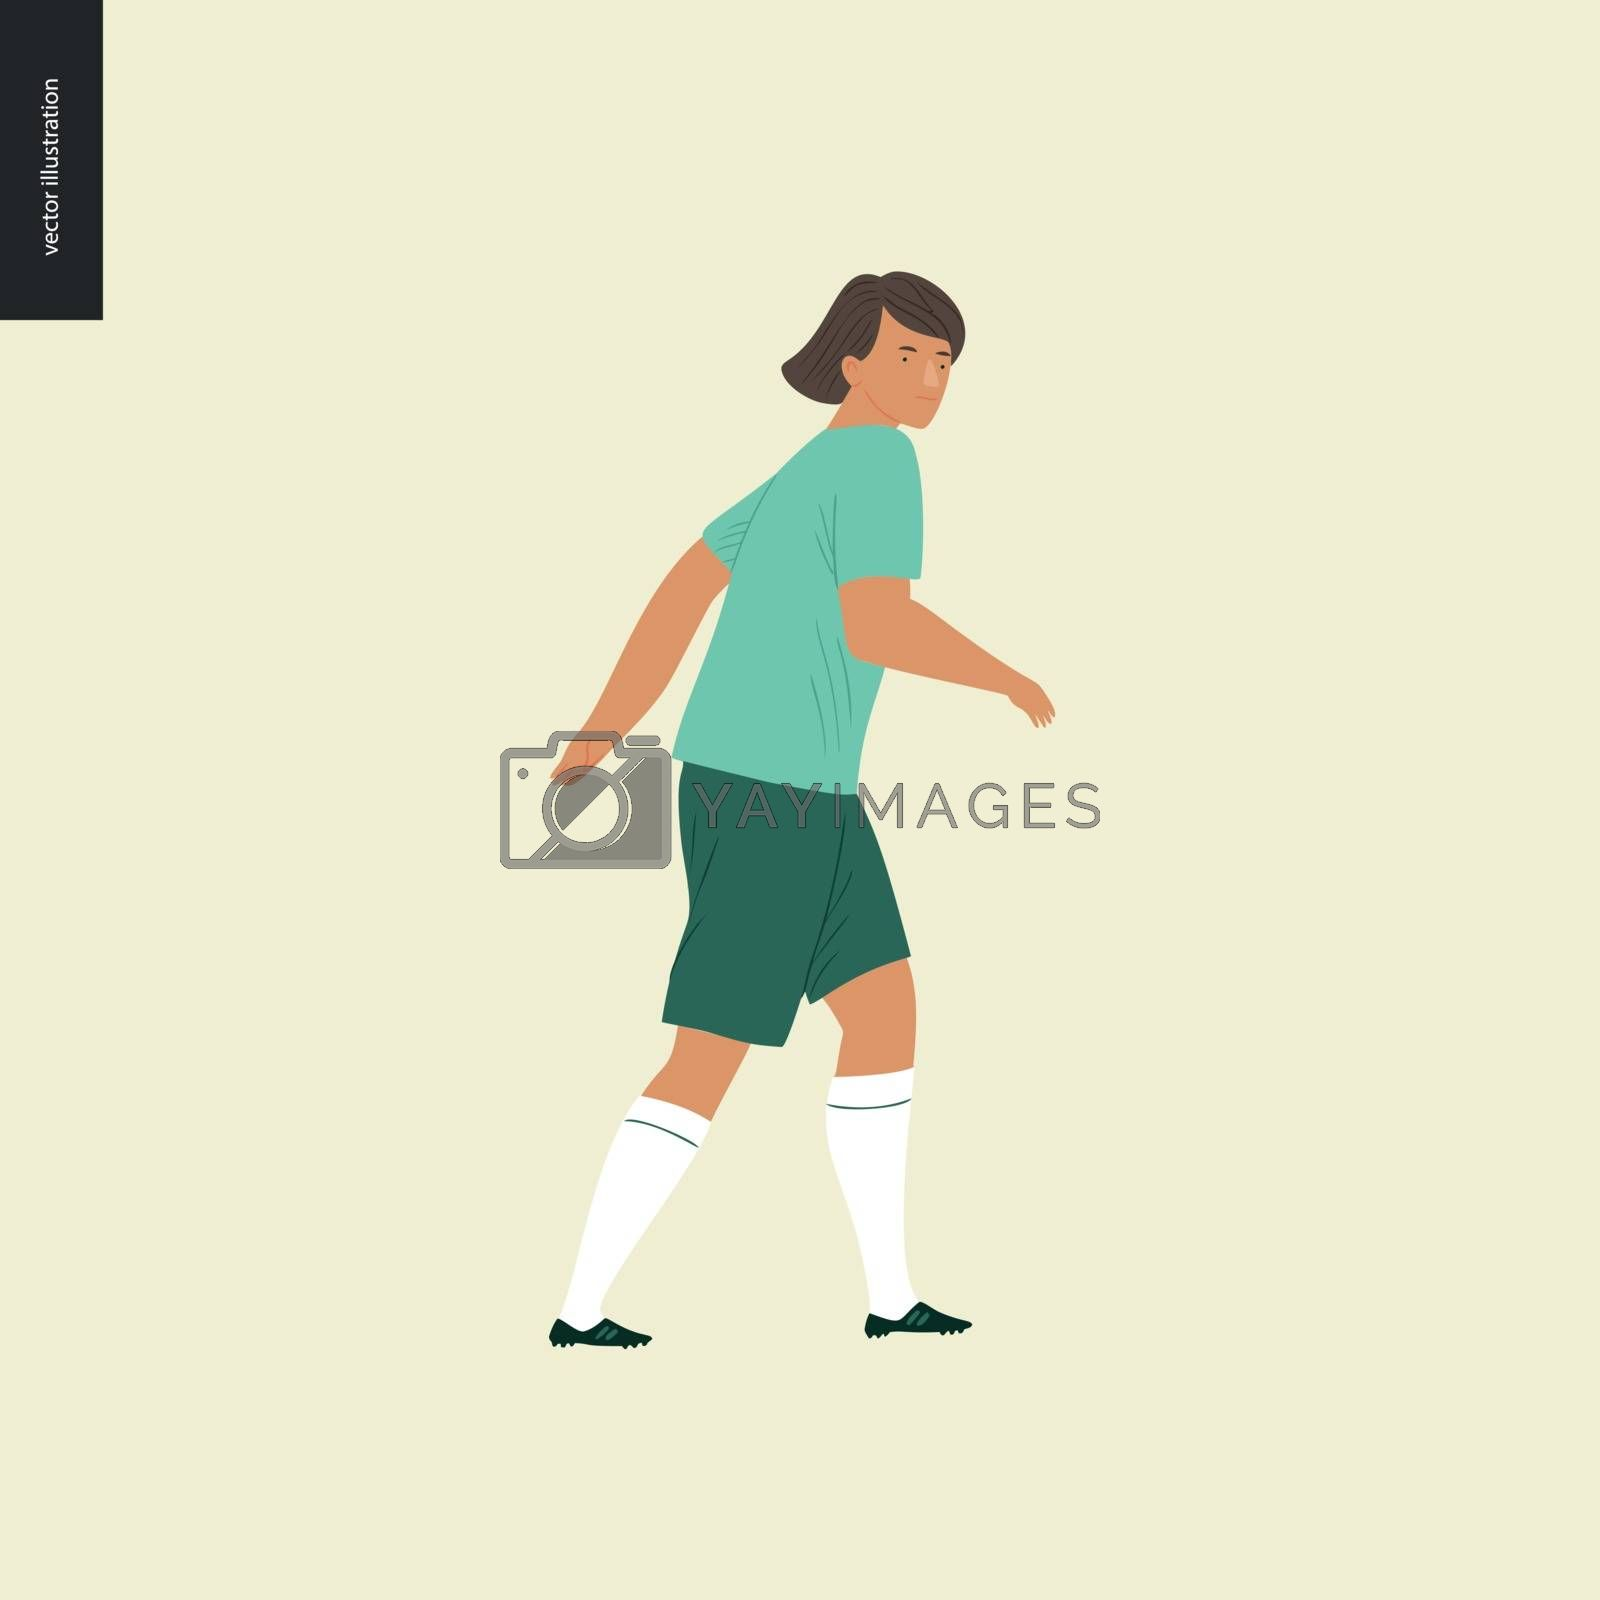 Womens European football, soccer player by grivina